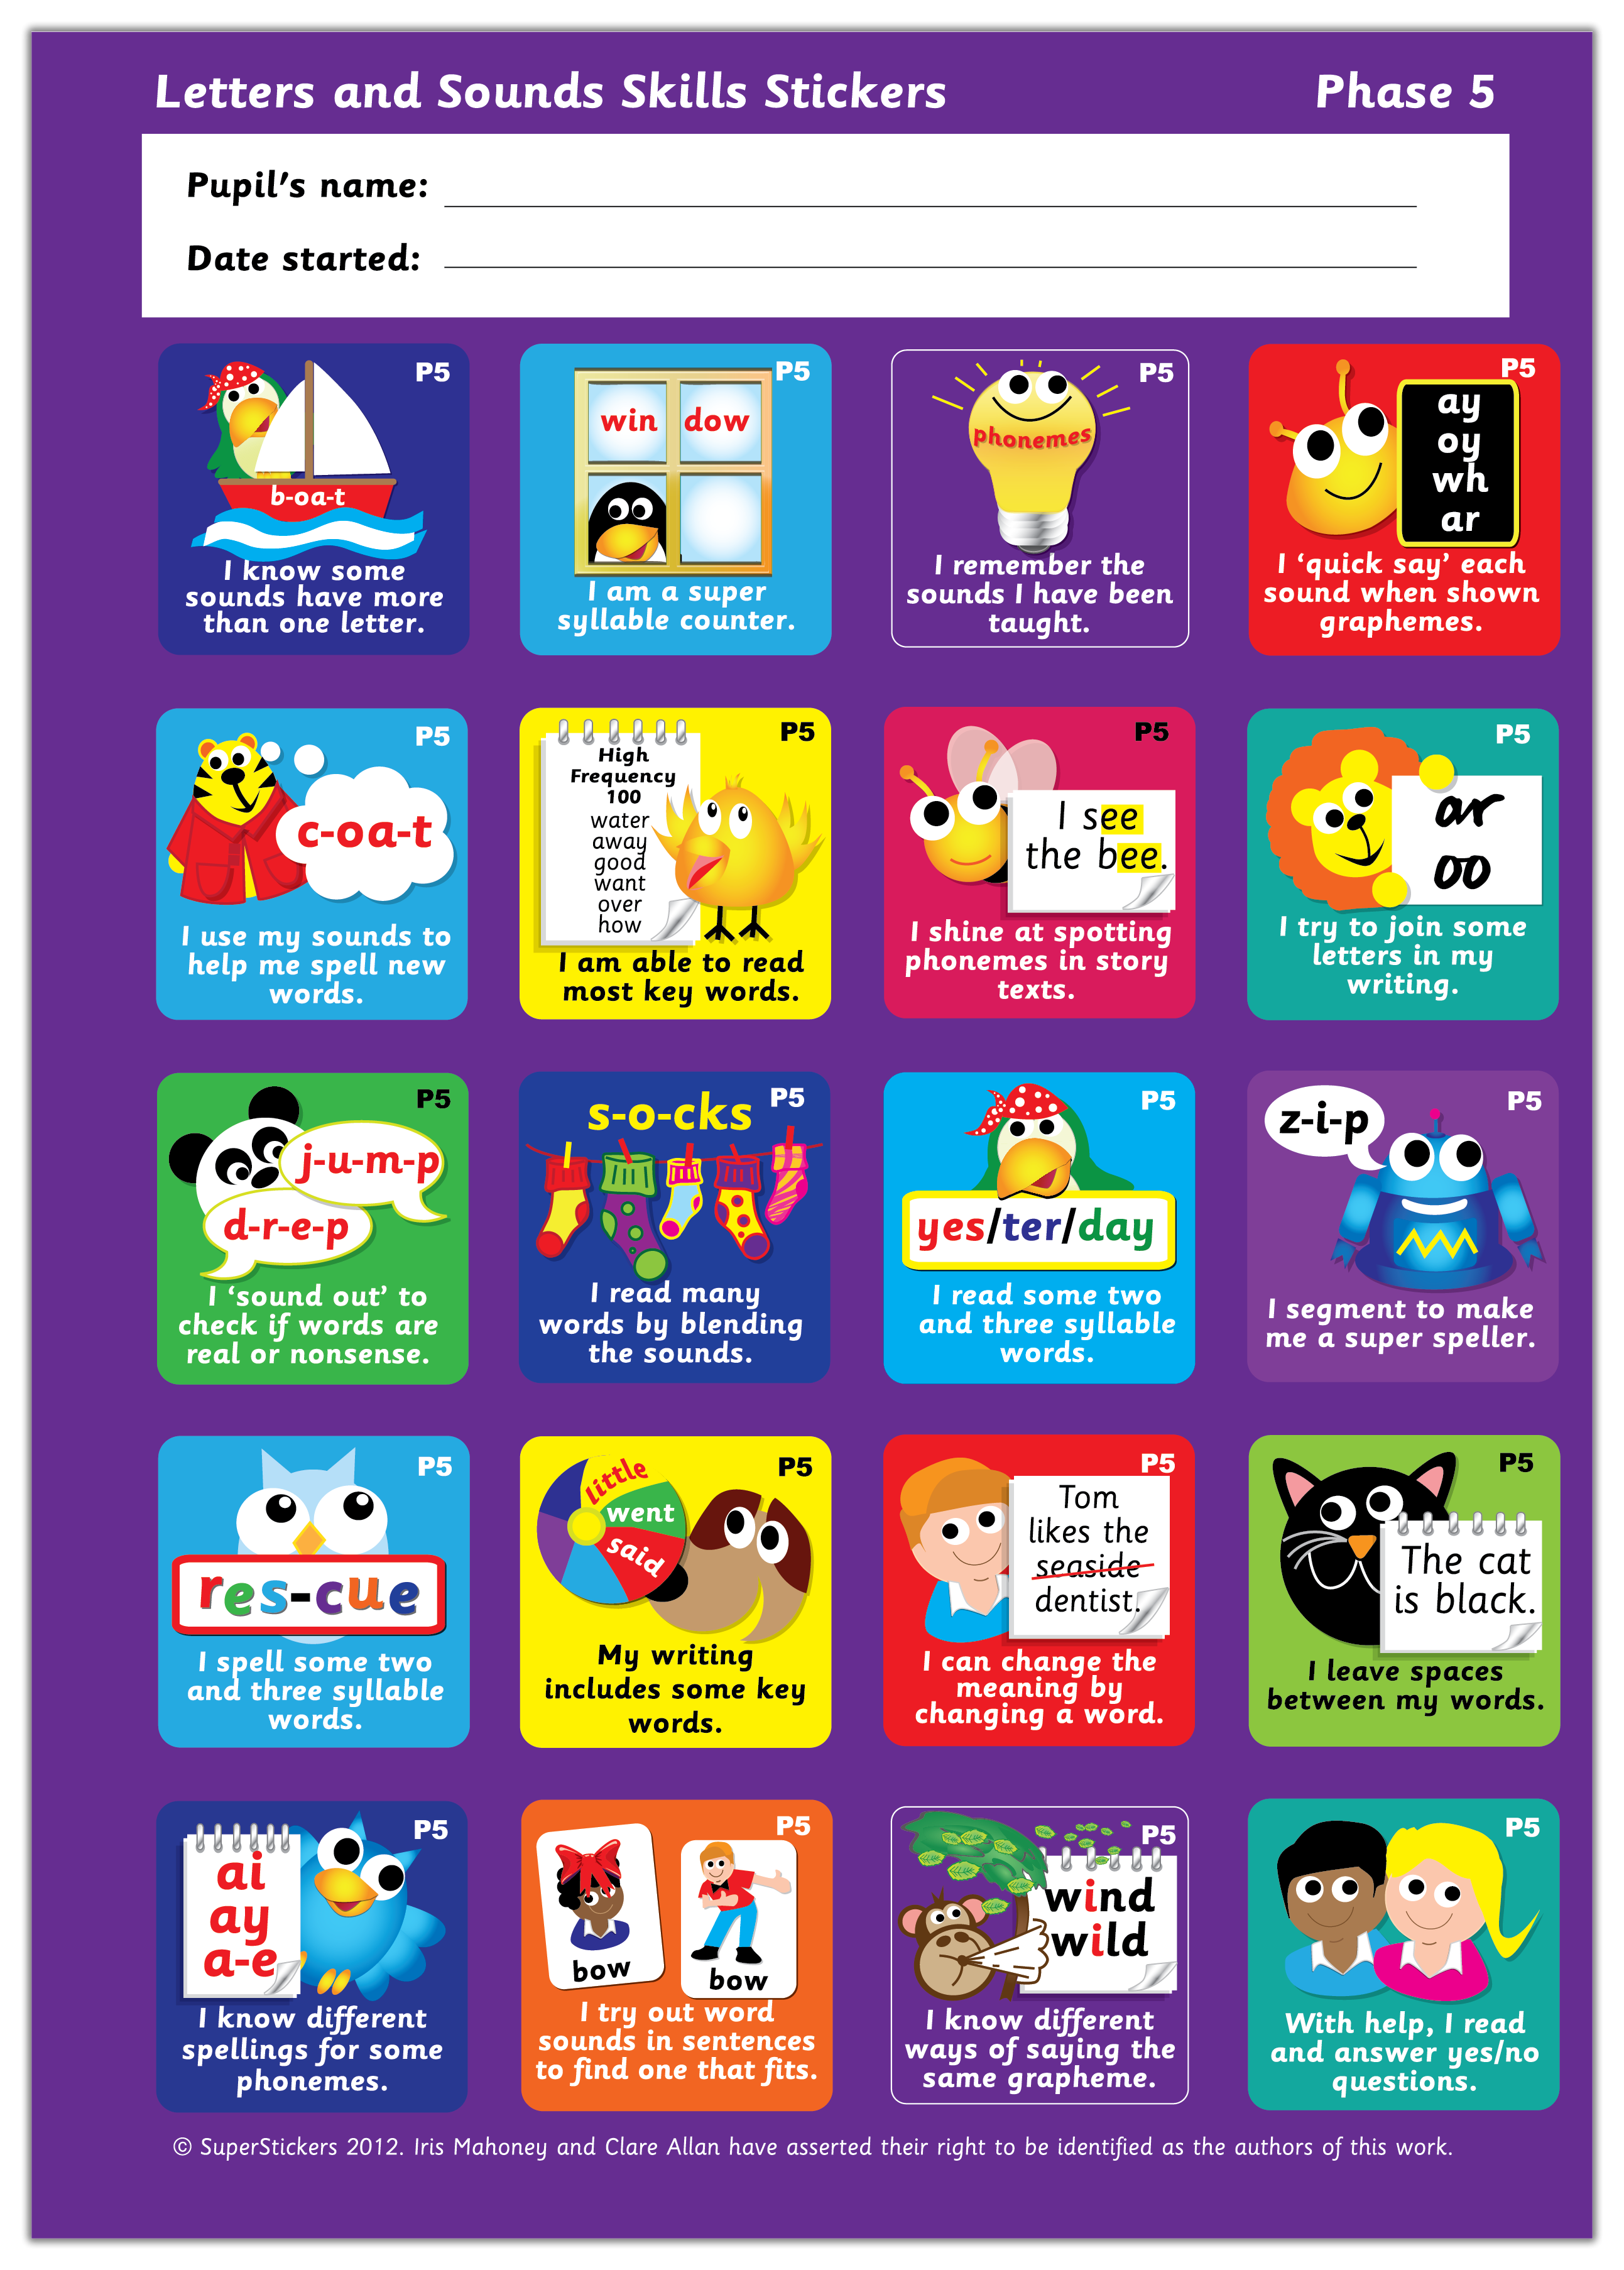 Sticker: Letters and Sounds Skills - Phase 5